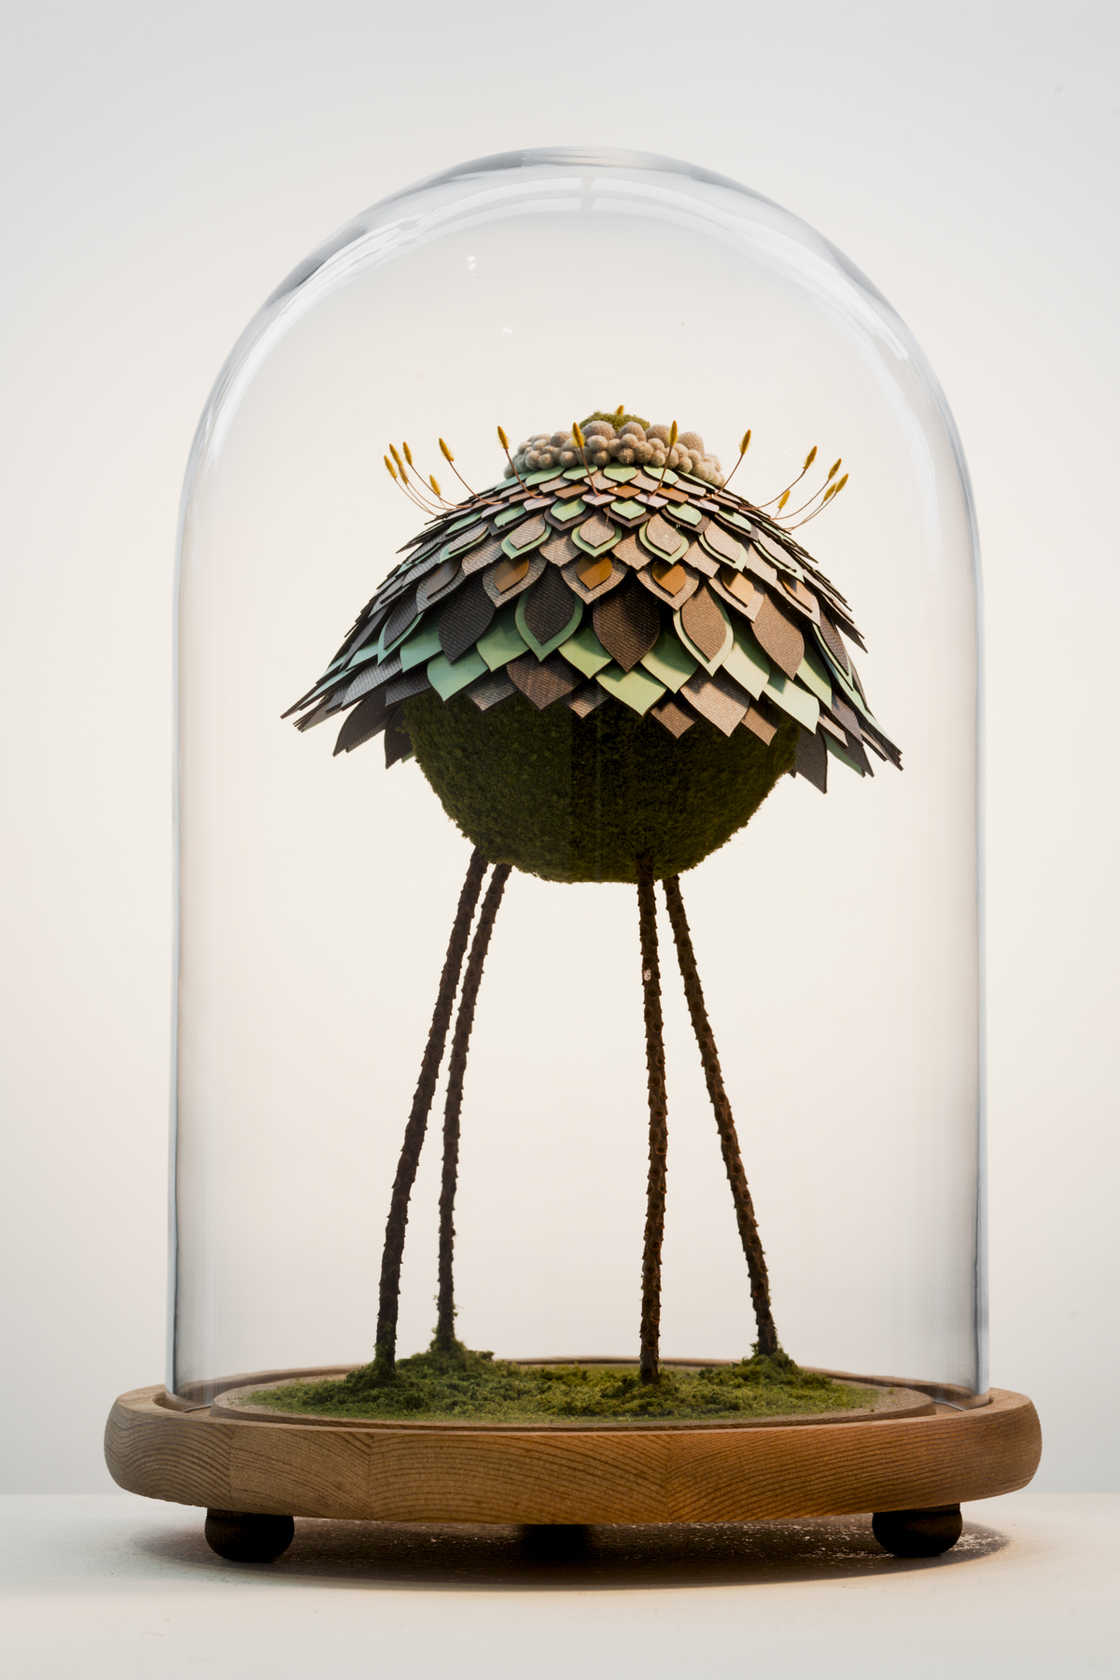 The strange feathered creatures of Noreen Loh Hui Miun